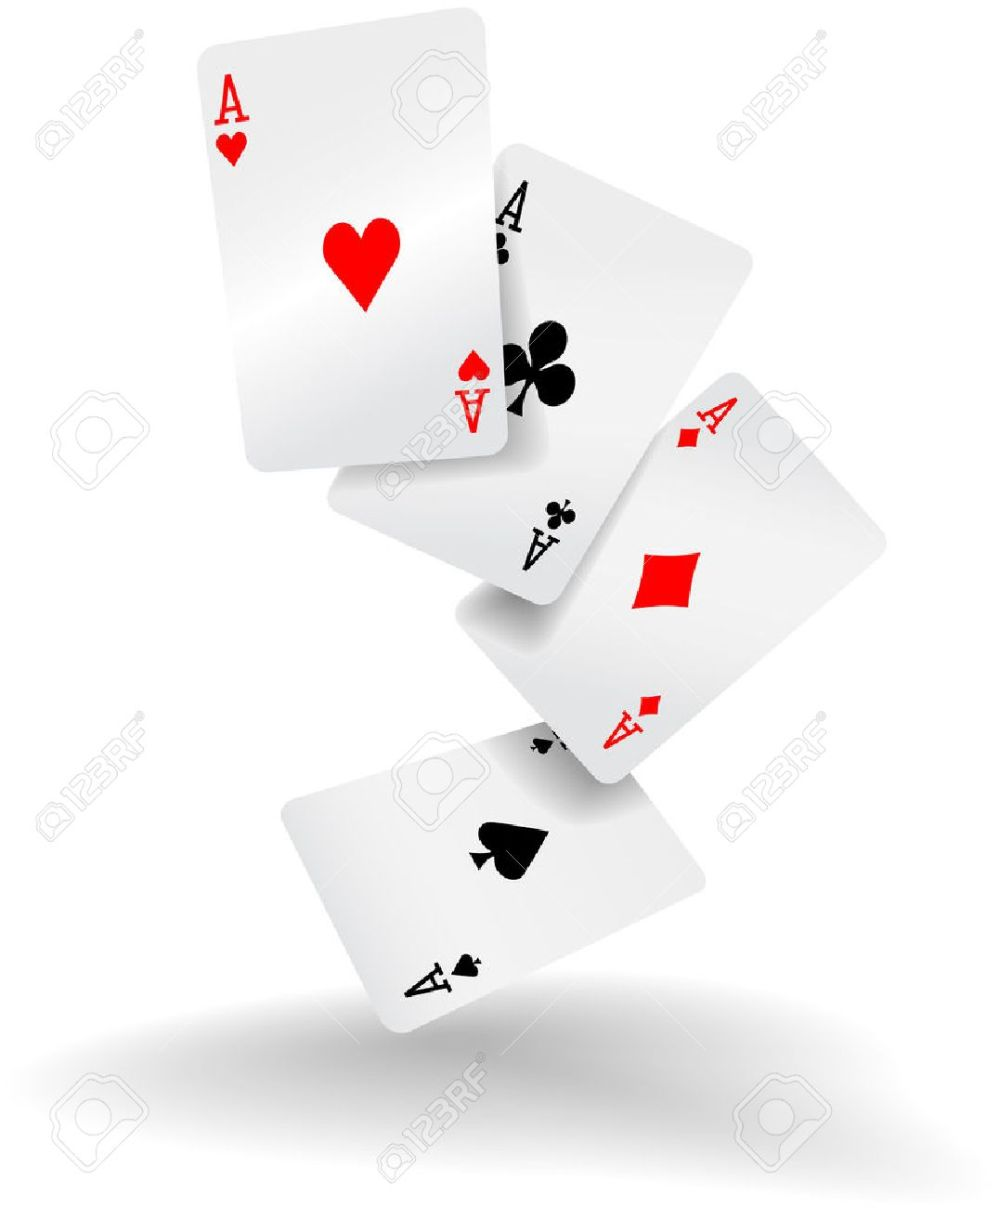 medium resolution of four aces of diamonds clubs spades and hearts fall or fly as poker playing cards